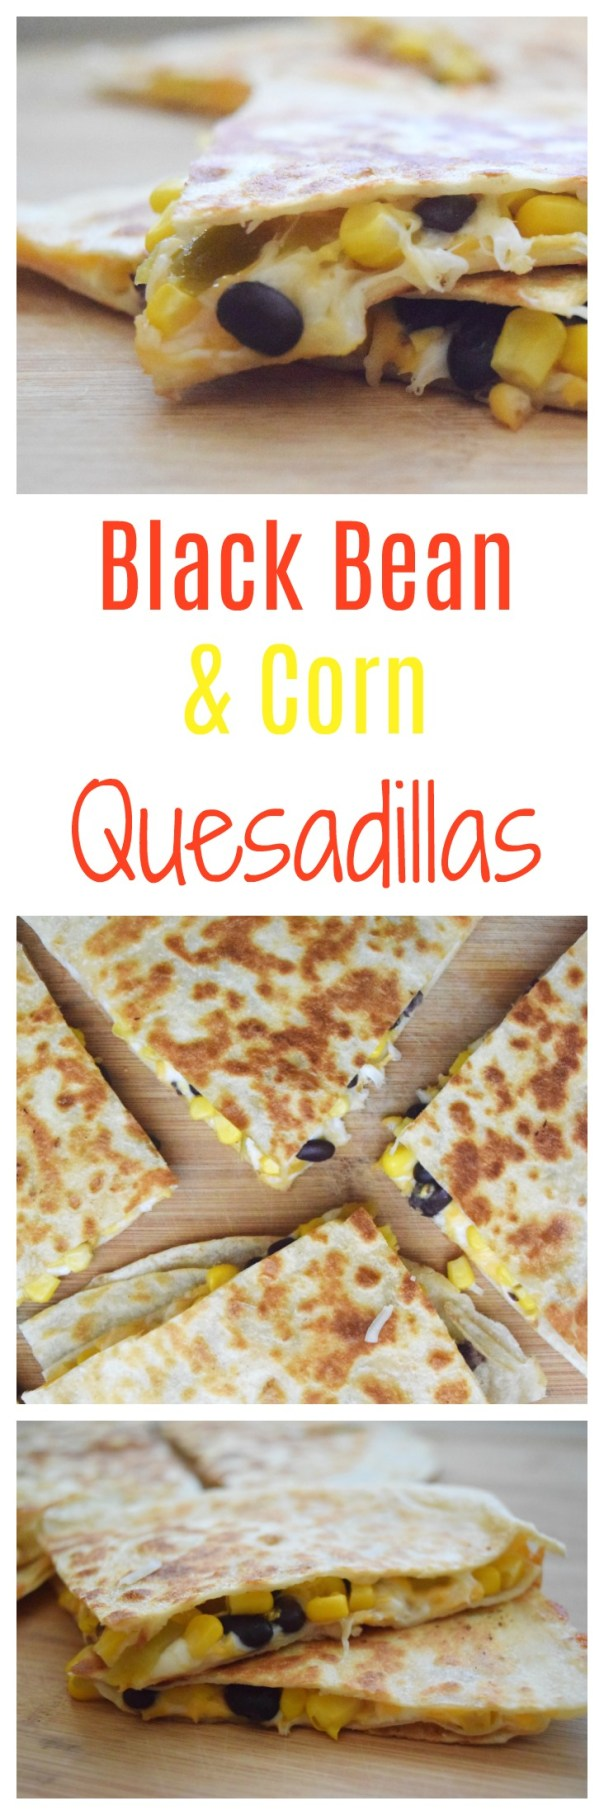 These black bean and corn quesadillas are full of flavor. They are perfect for an easy kid-friendly meal and work for Meatless Monday, too!